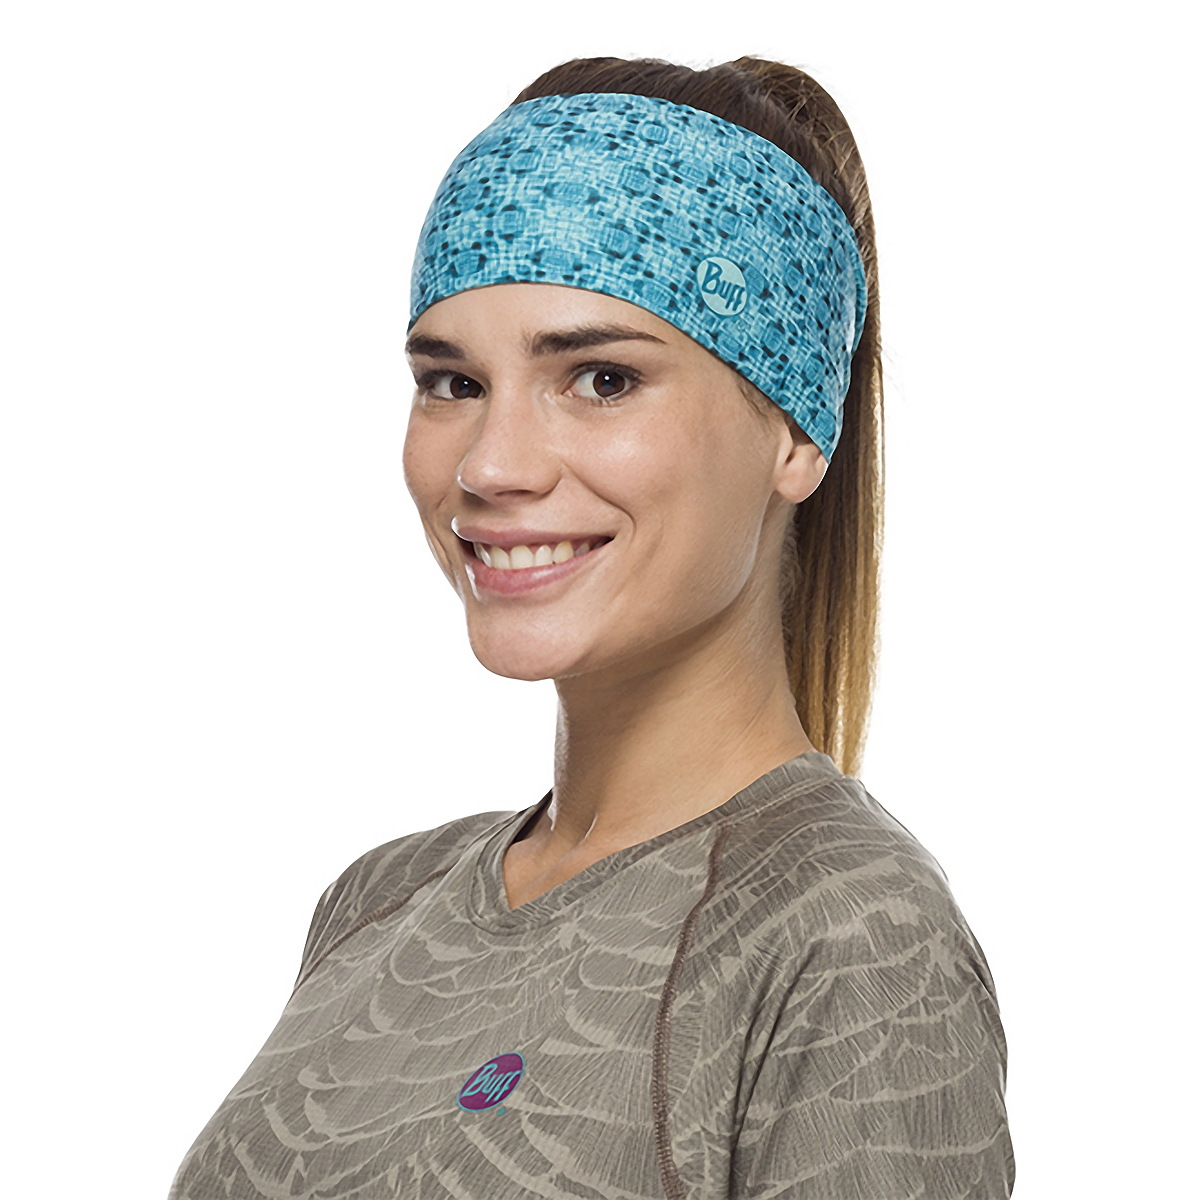 Buff Coolnet UV+ Tapered Headband - Color: Balmor Pool, Balmor Pool, large, image 2